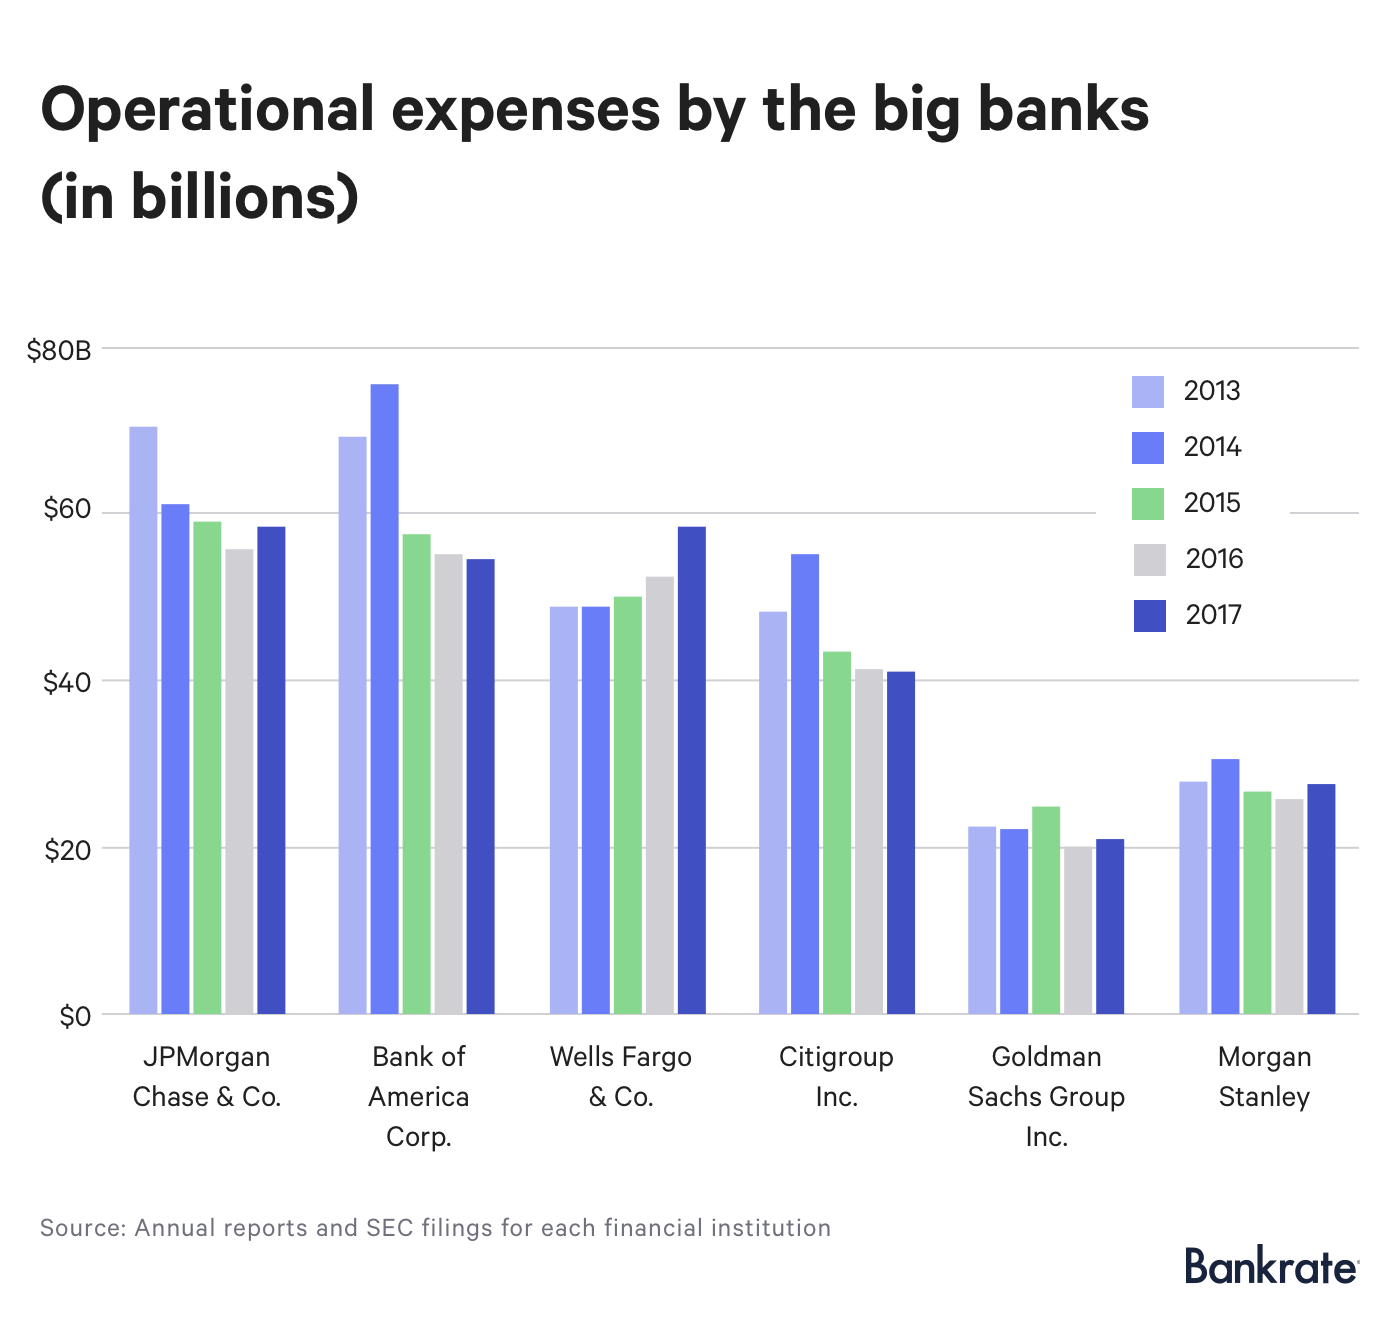 Operational expenses by the big banks (in billions)